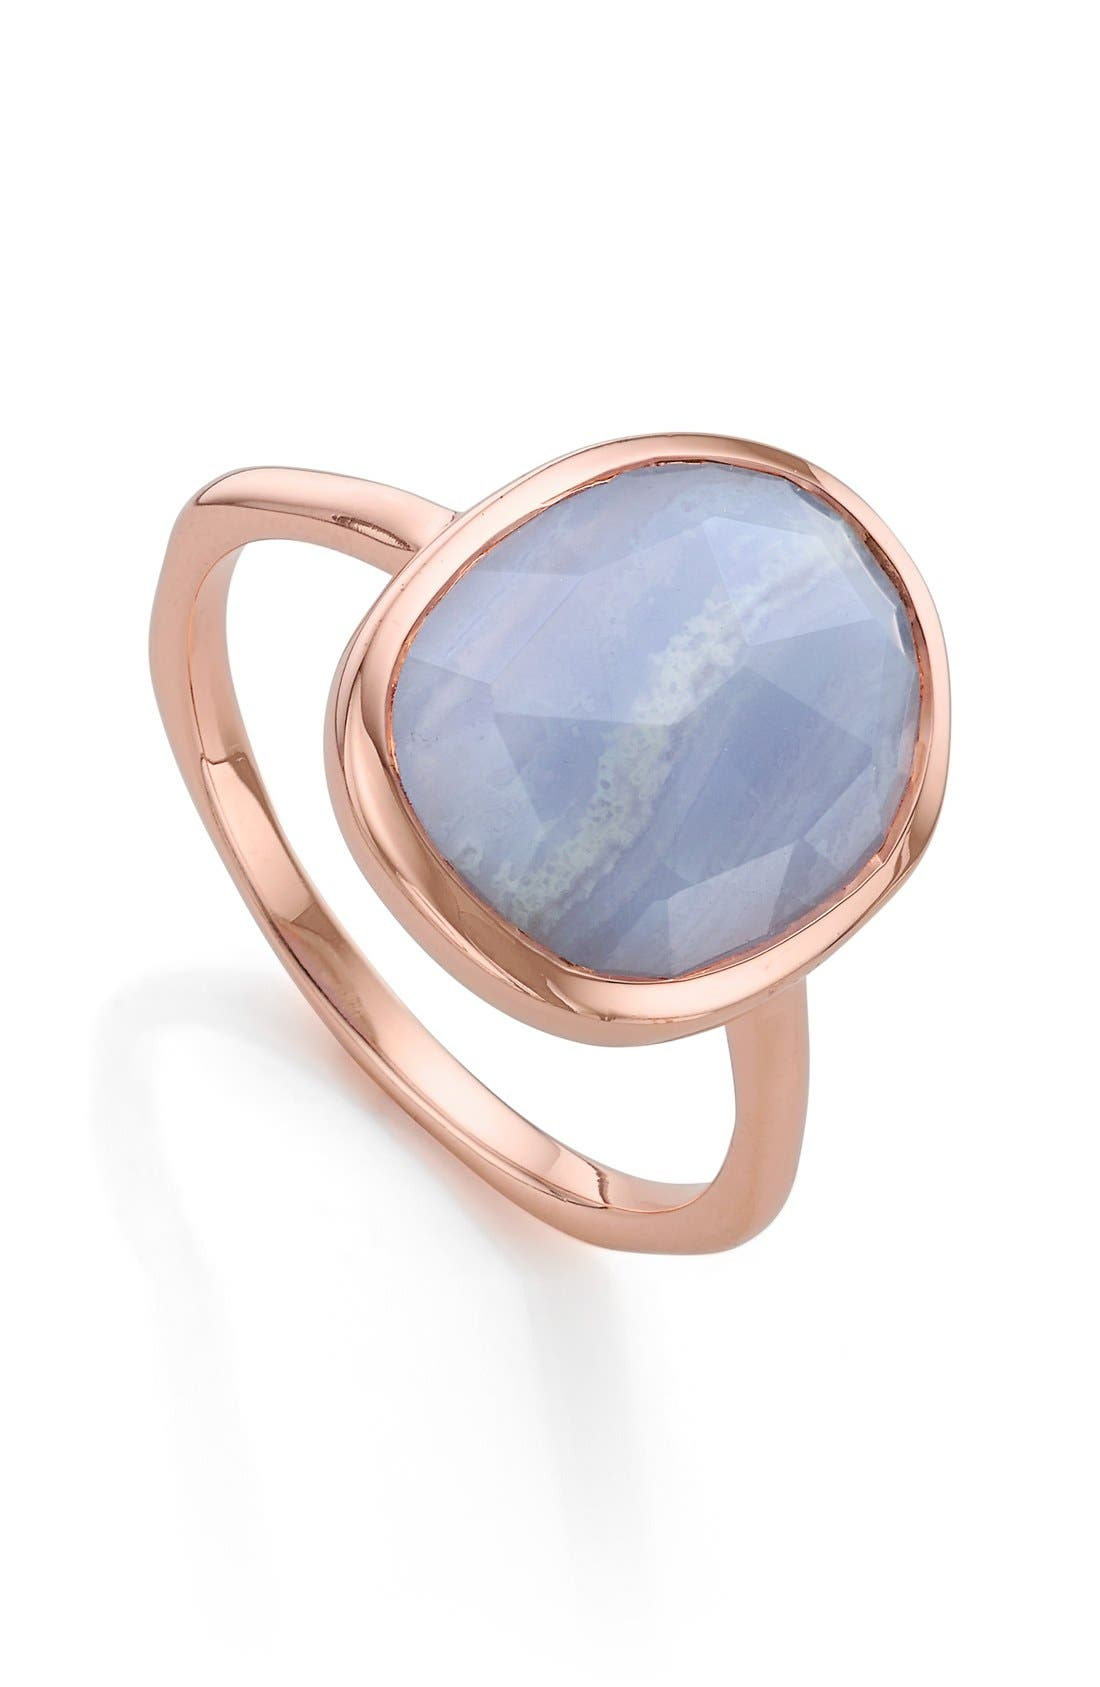 Monica Vinader 'Siren' Medium Semiprecious Stone Stacking Ring